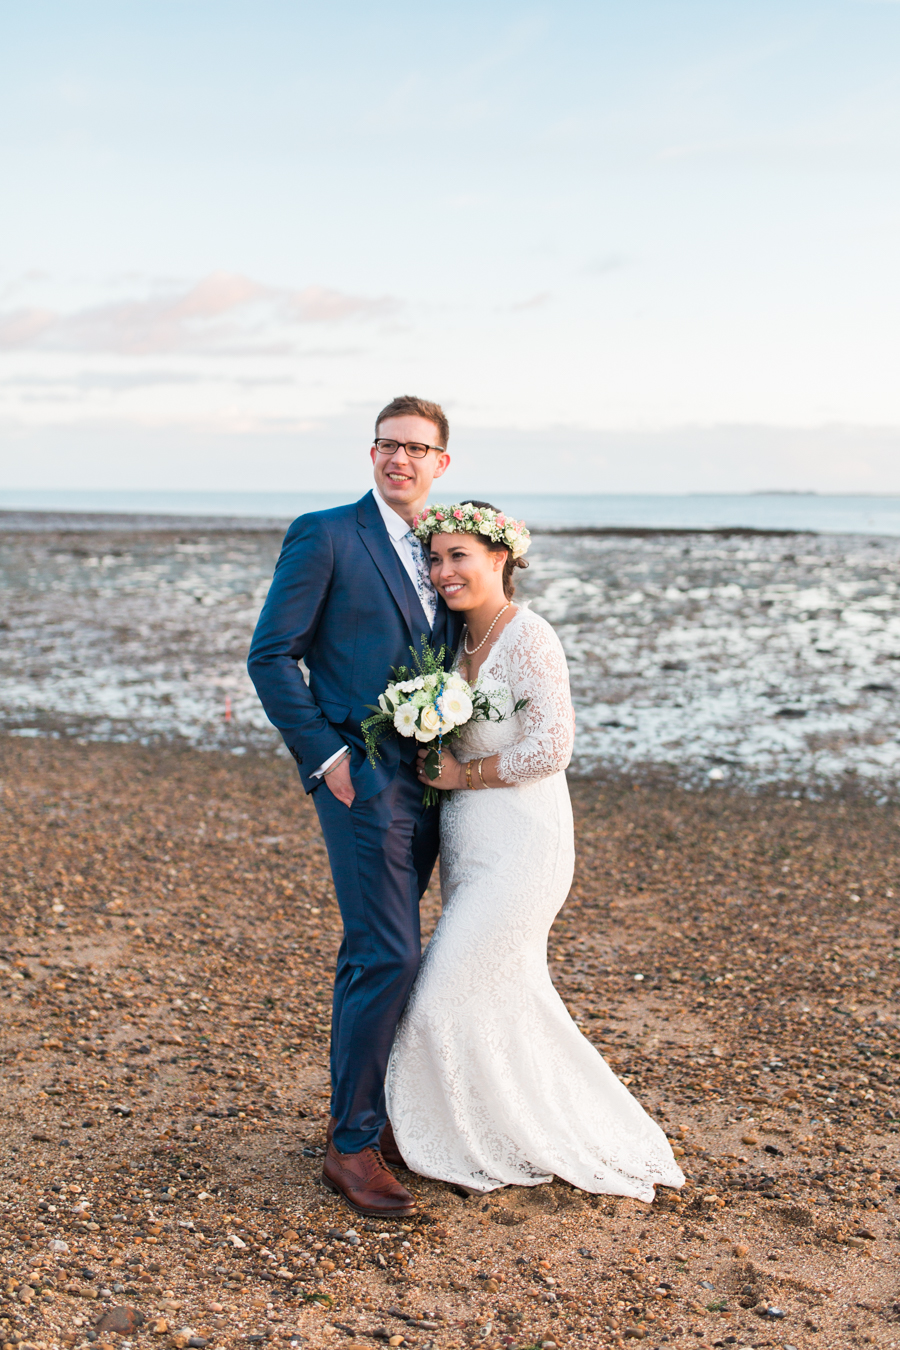 mersea-island-essex-wedding-photos-gemma-giorgio-photography-82